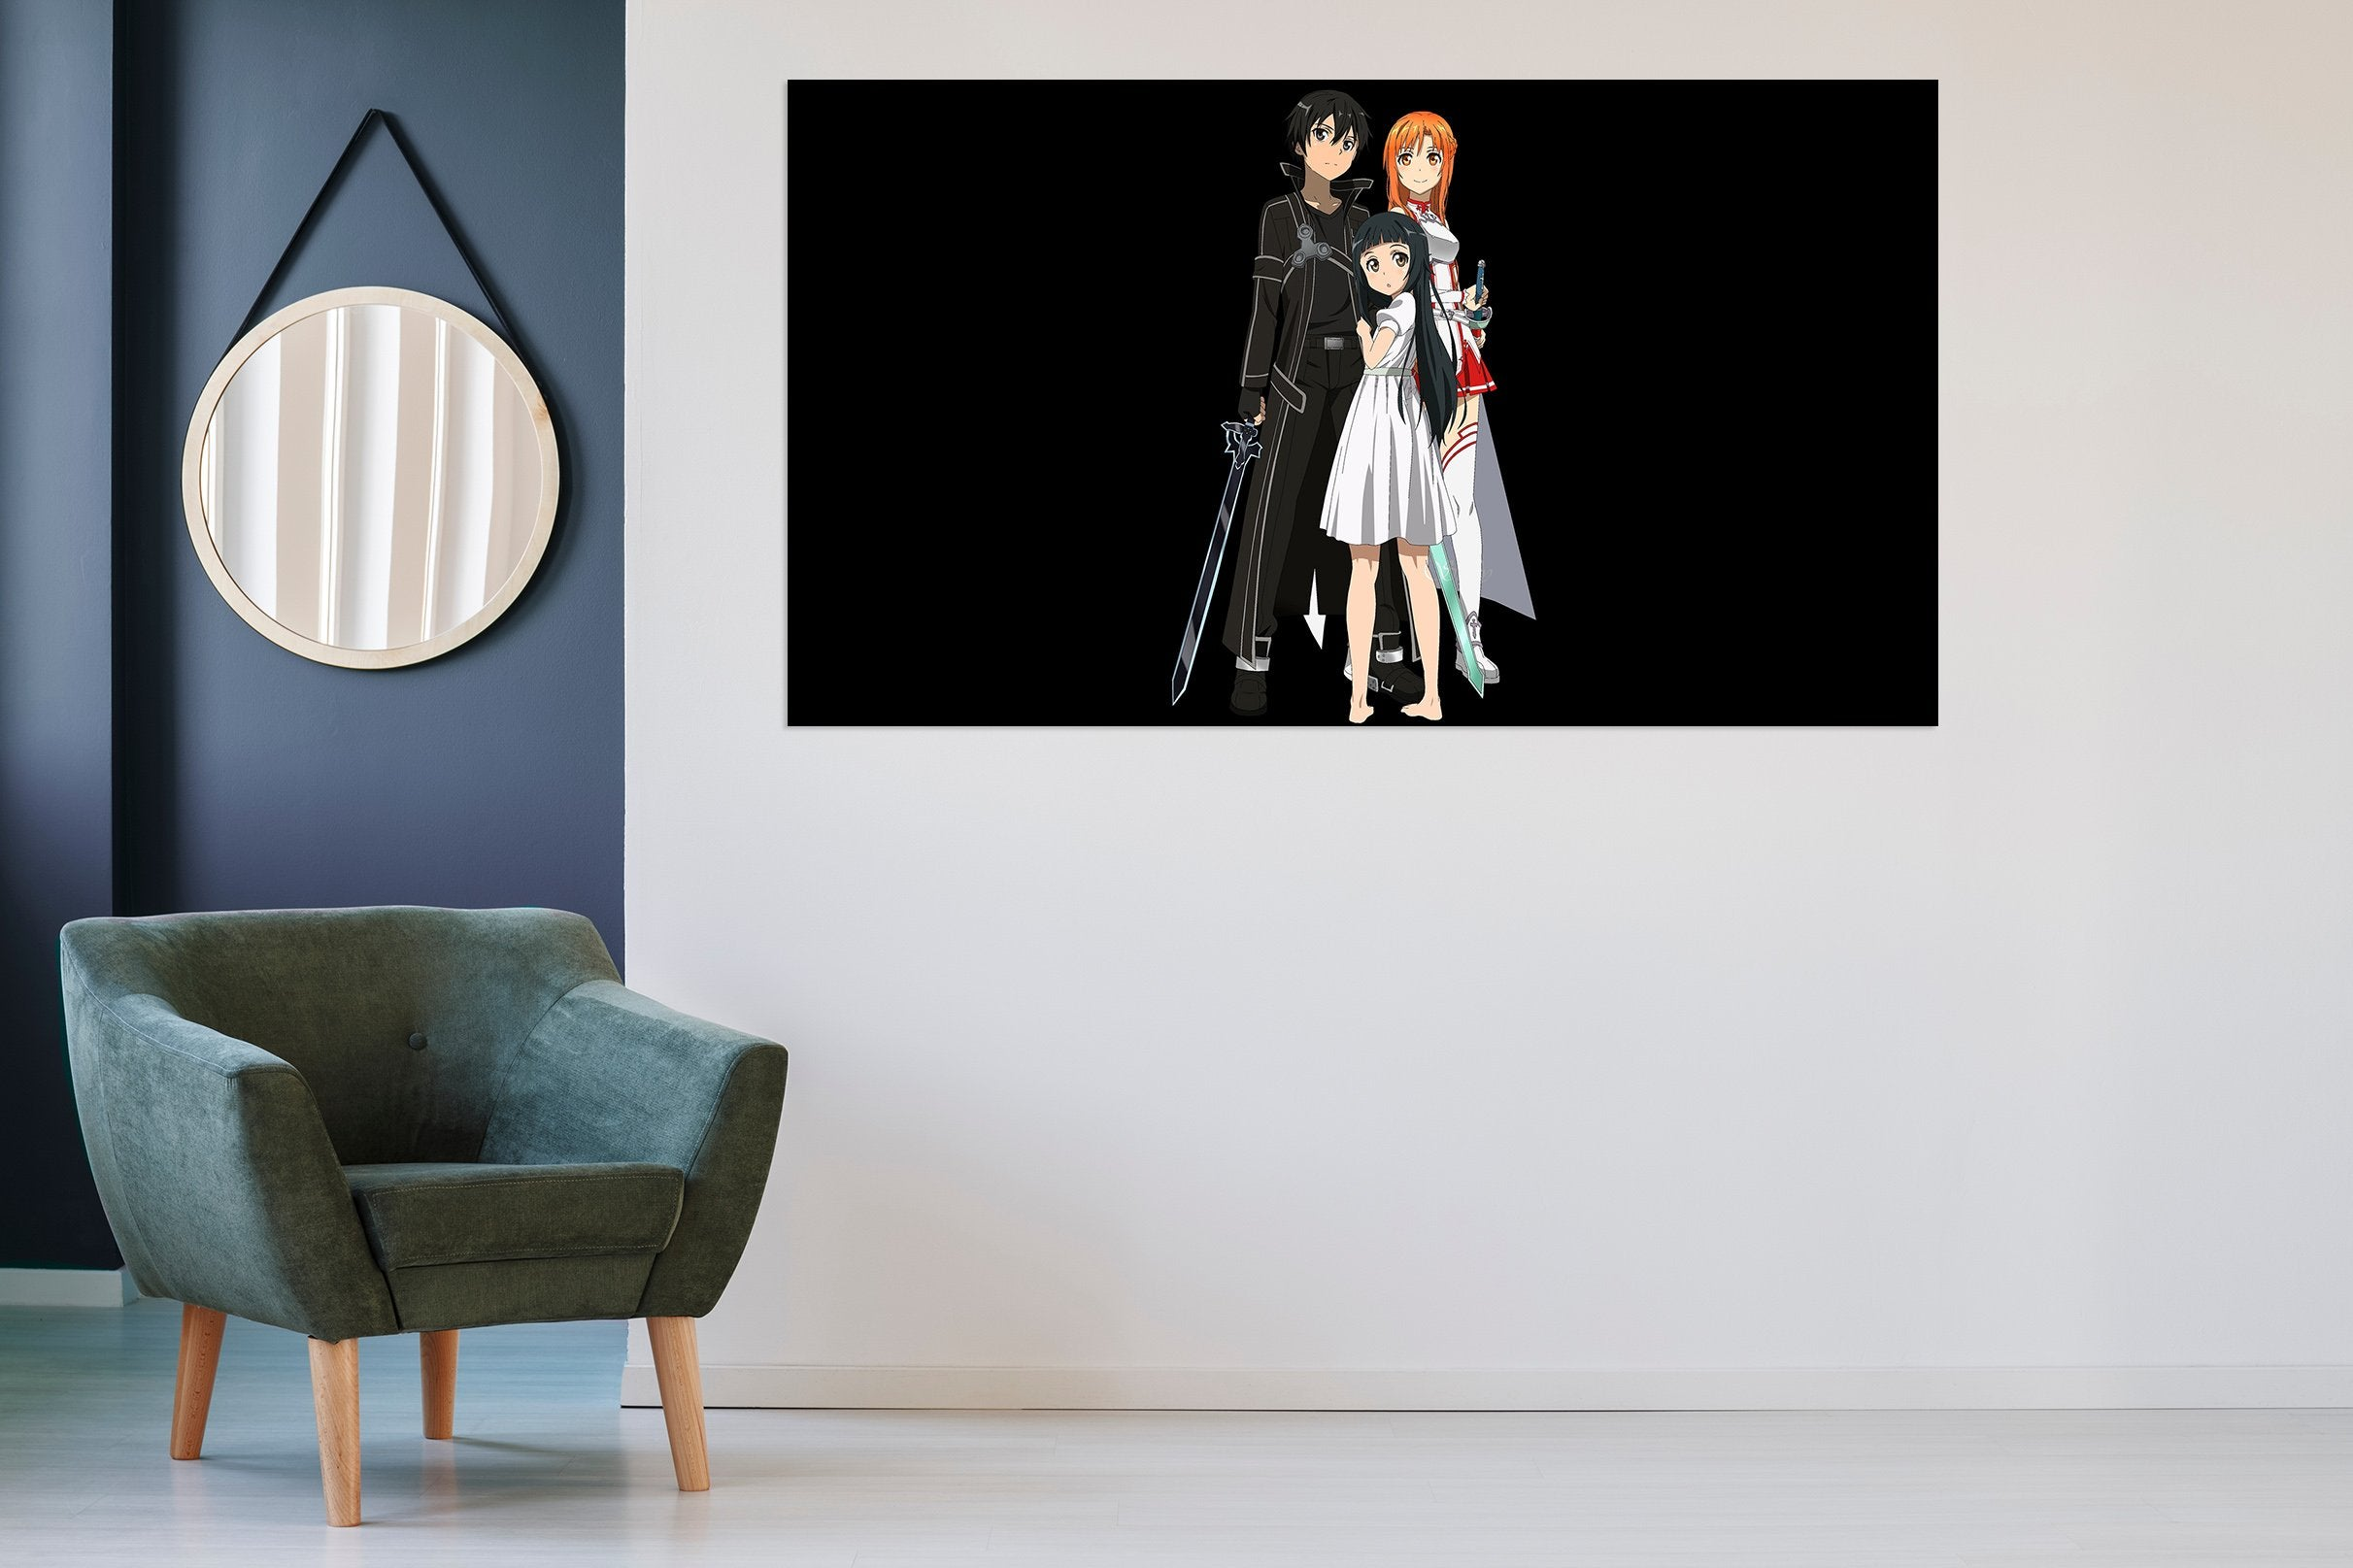 3D Sword Art Online 187 Anime Wall Stickers Wallpaper AJ Wallpaper 2